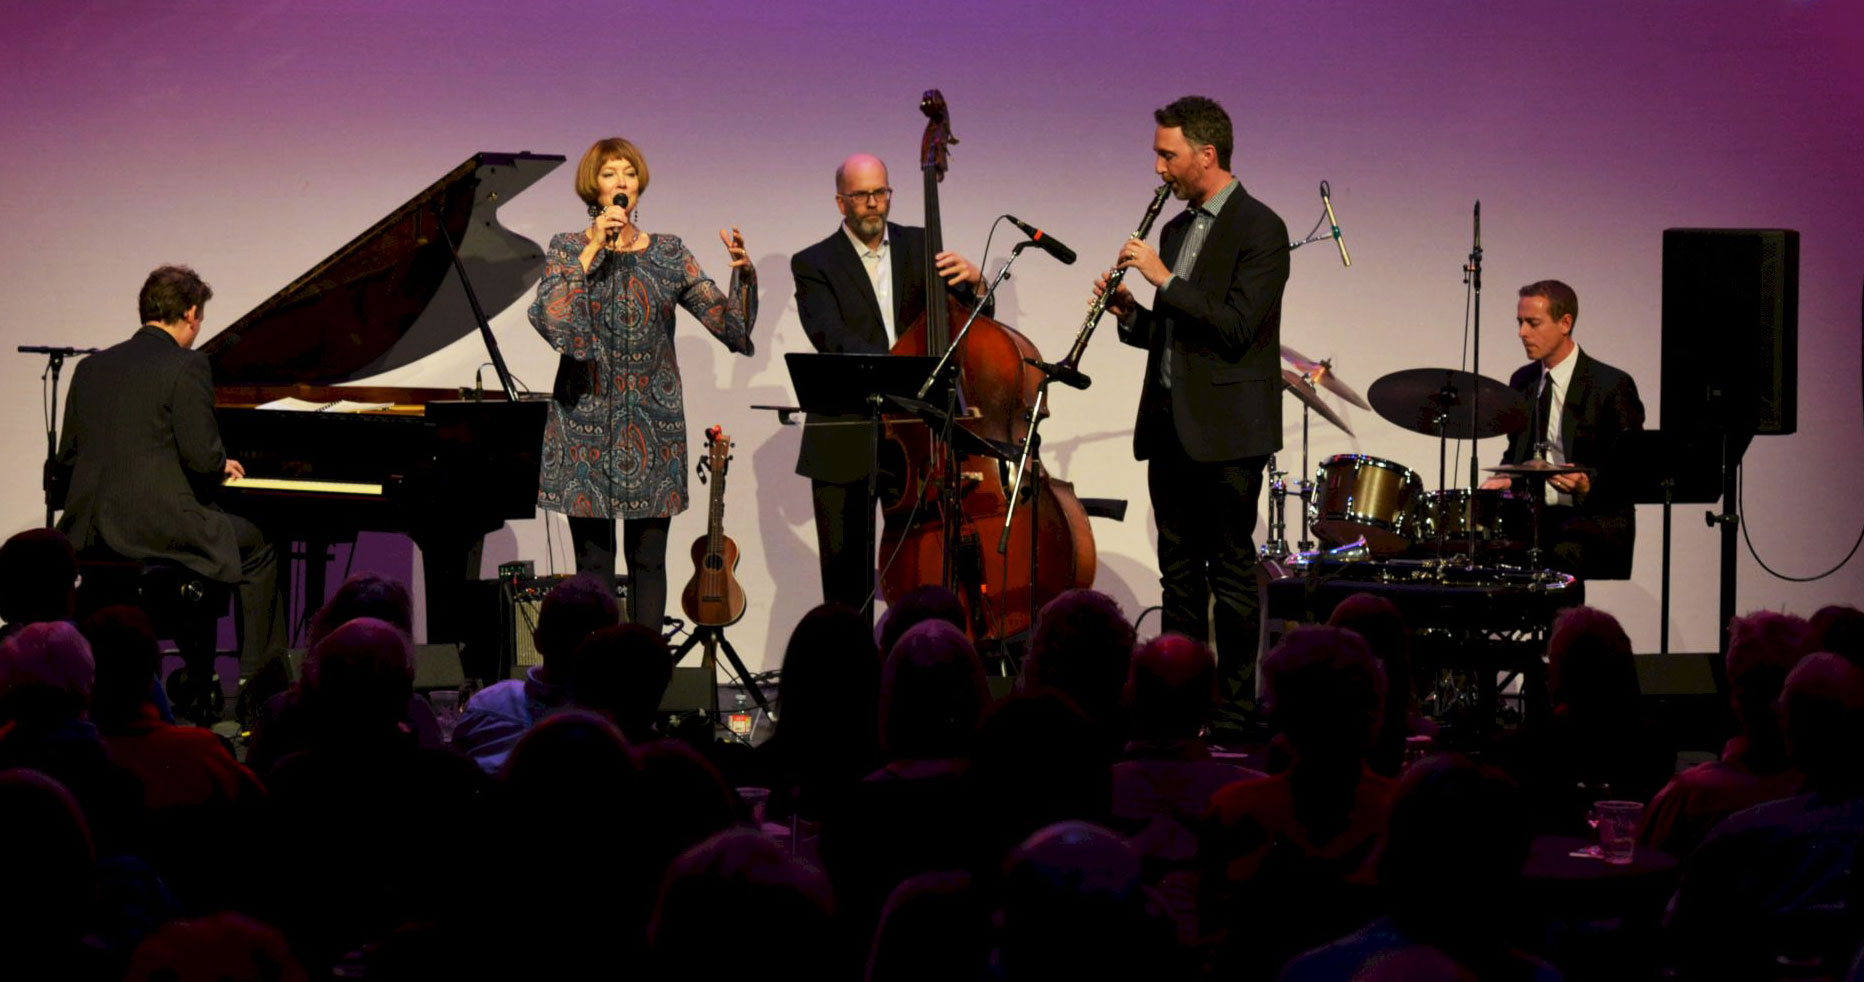 KP Quintet on stage (photo by Bruce Barrett)